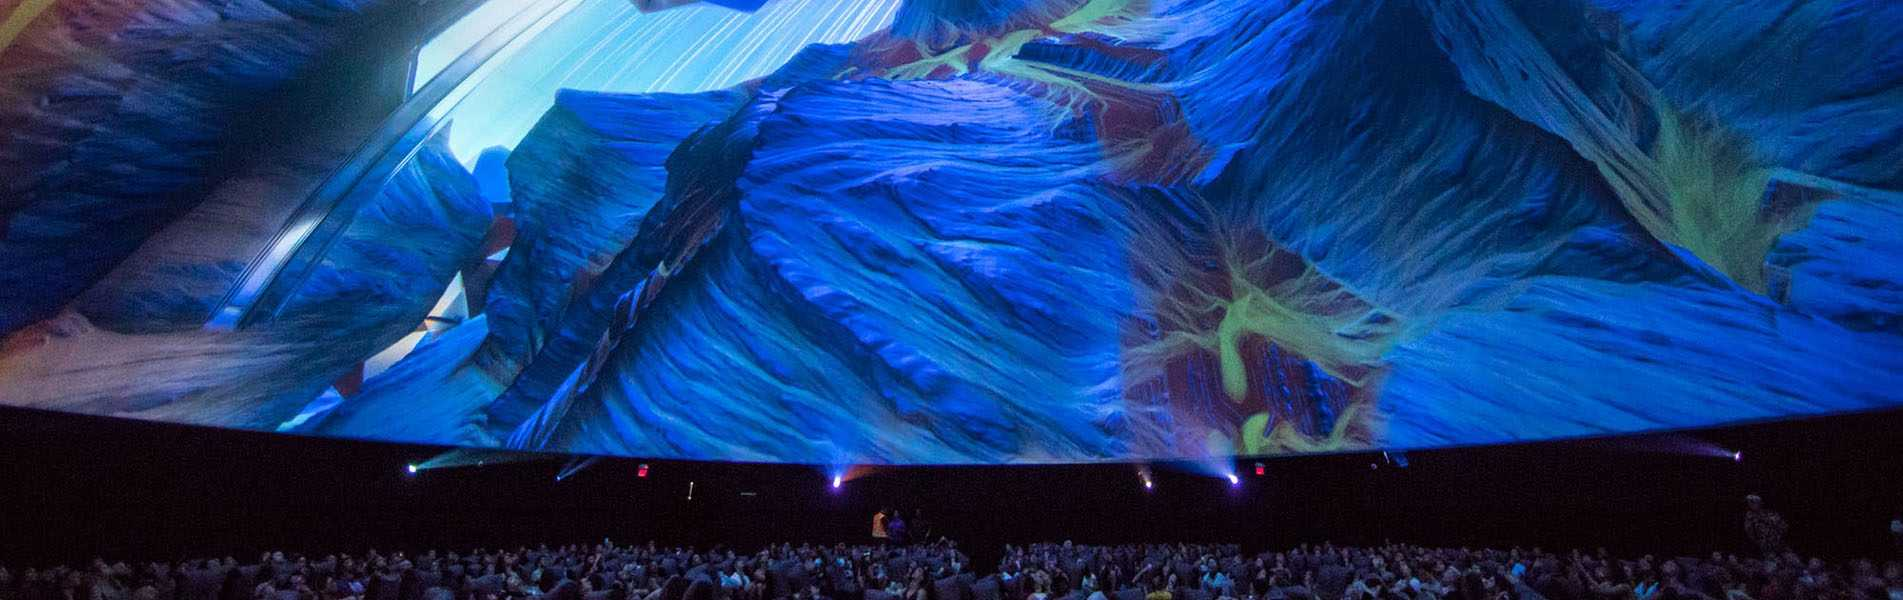 120ft Projection Dome - Pacific Domes